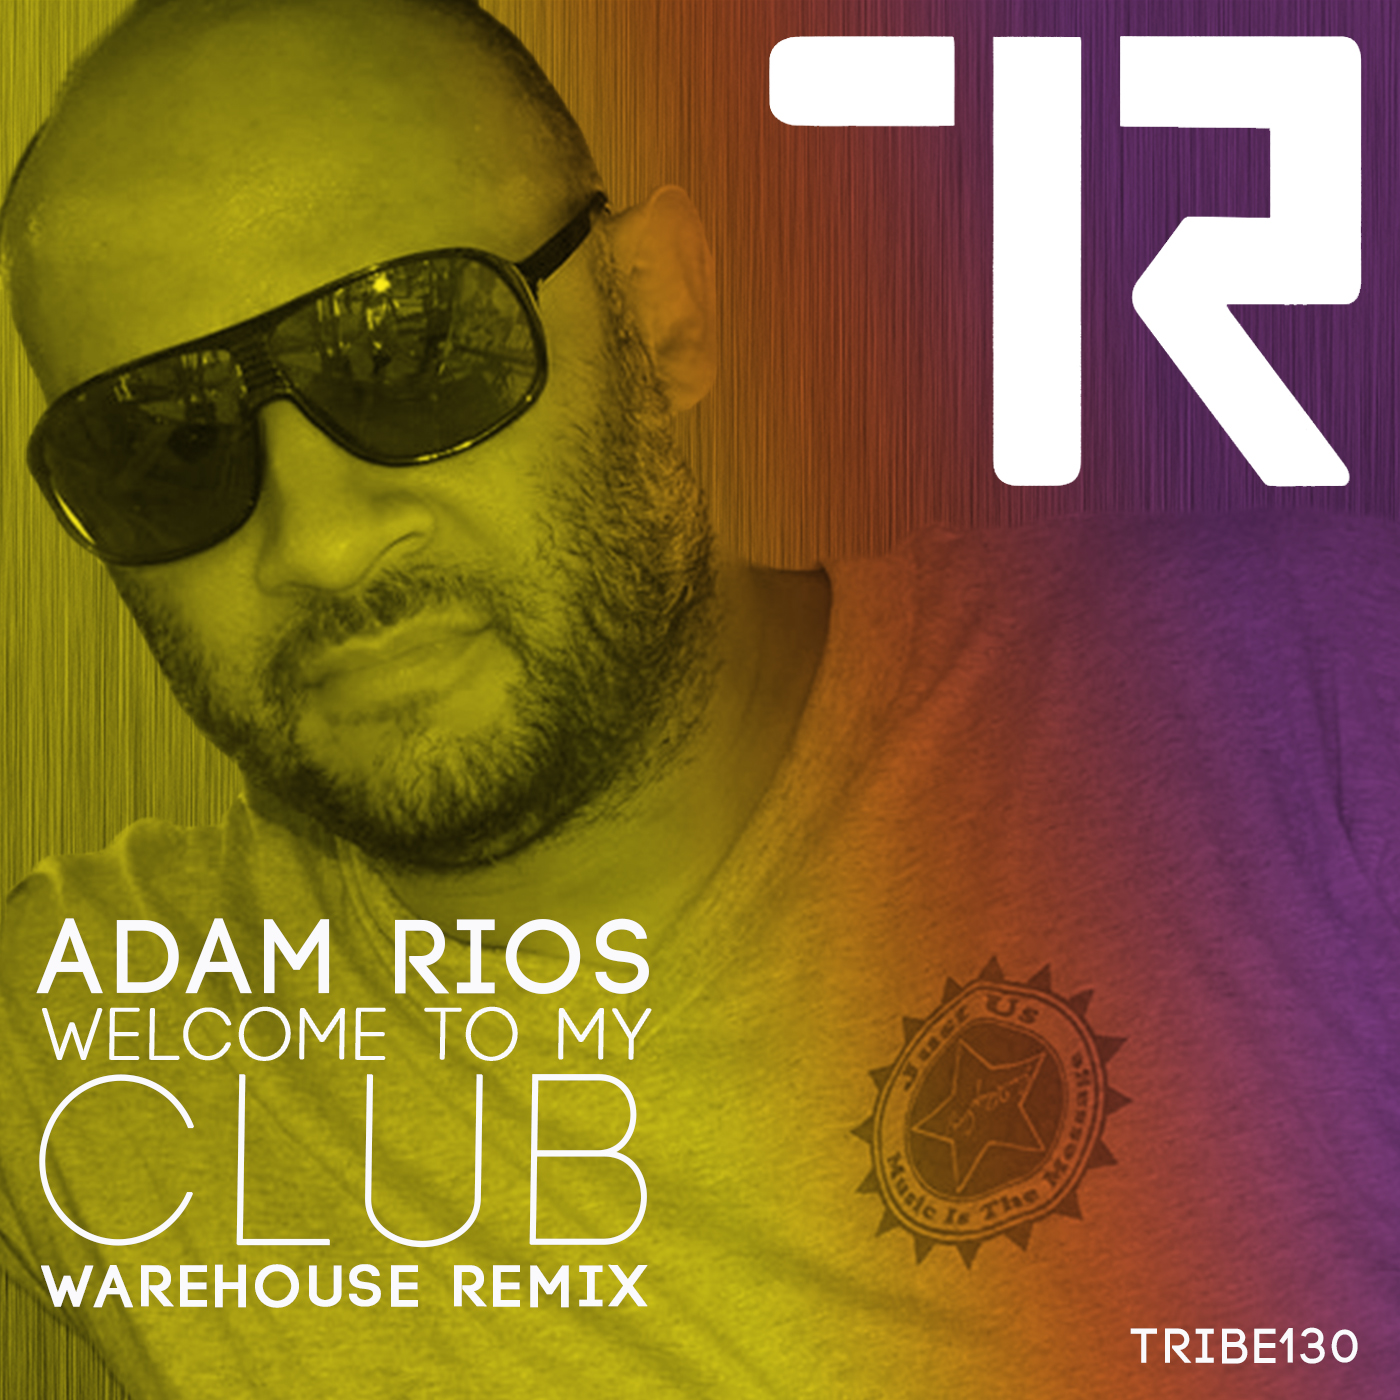 WELCOME TO MY CLUB (WAREHOUSE REMIXES) ADAM RIOS